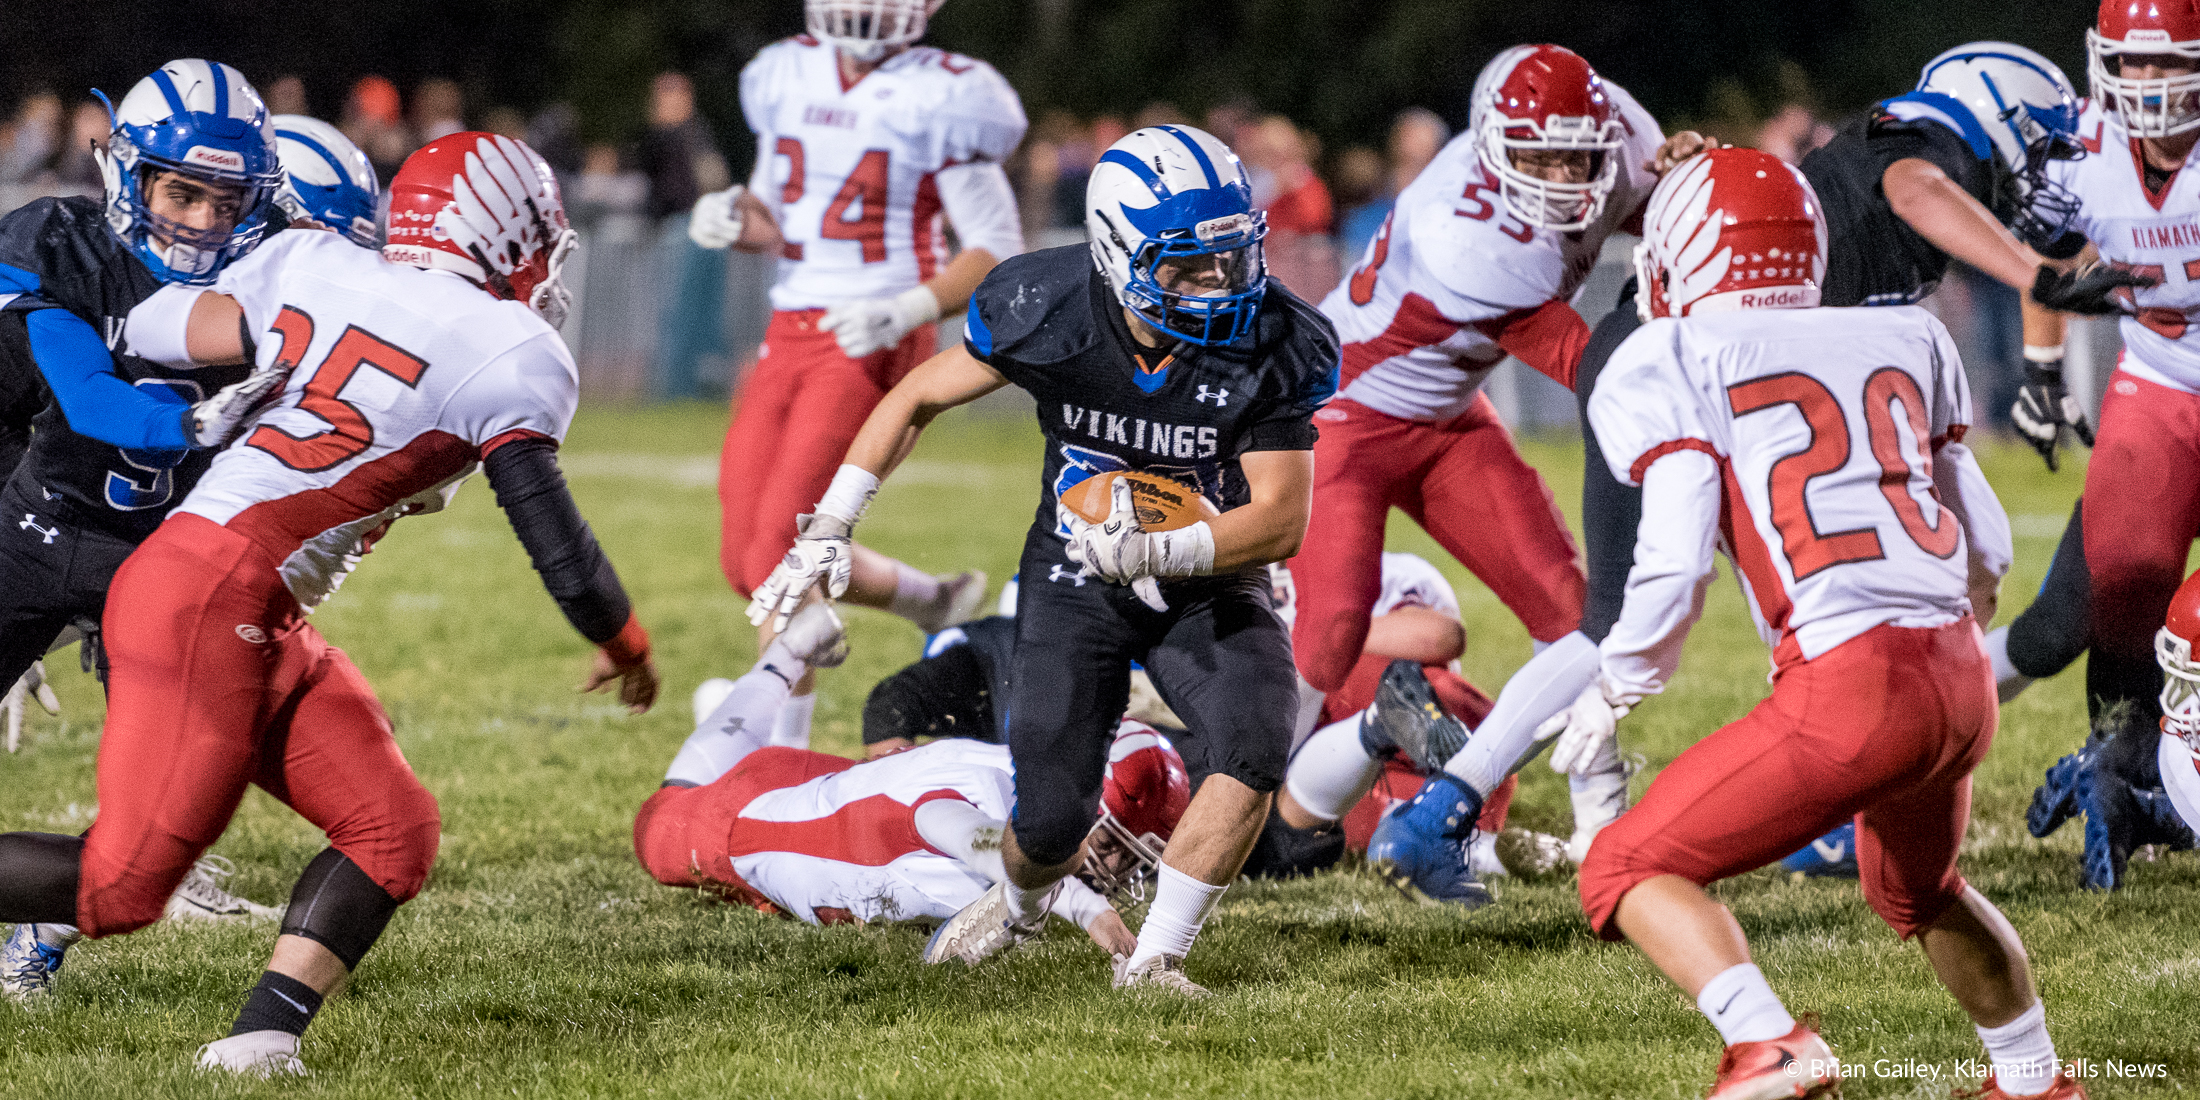 Braydon Wright scampers through the Klamath Union defense for a First Down. ( Brian Gaile)